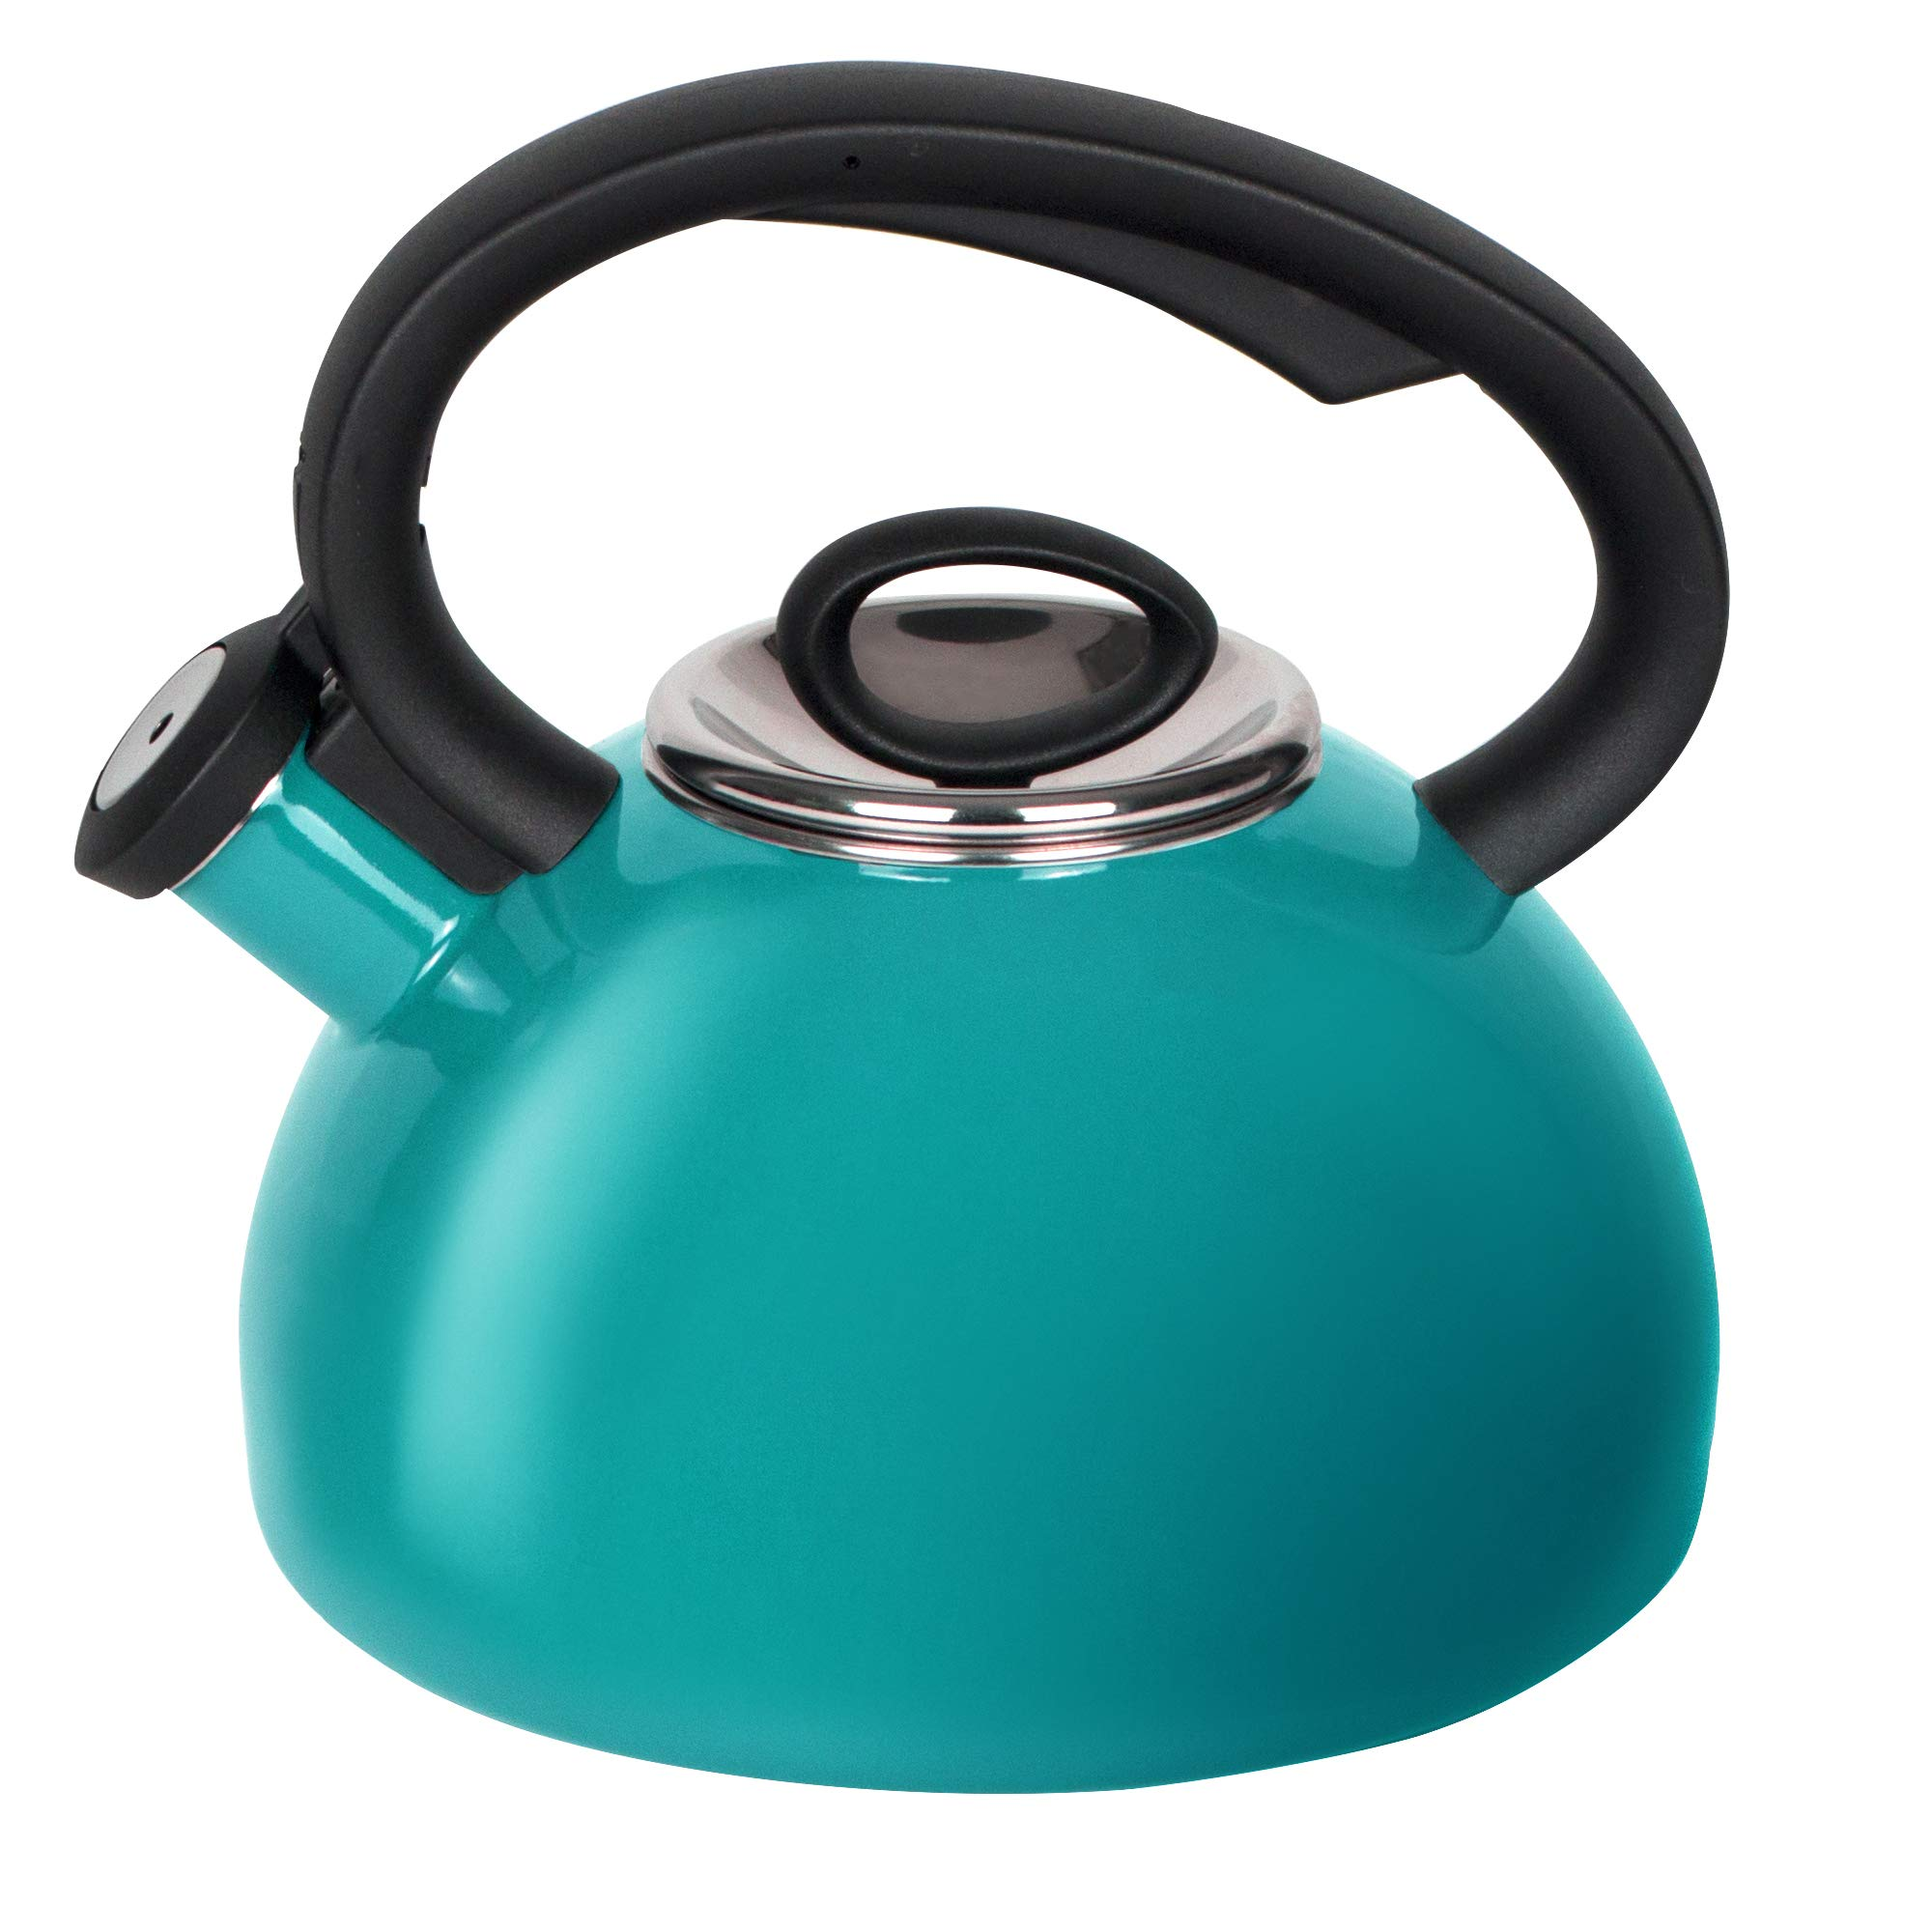 Whistling Tea Kettles, AIDEA 2 Quart Ceramic Tea Kettle for Stovetop Induction, Enameled Interior Tea Pot for Anti-Rust, Audible Whistling Hot Water Kettle for Kitchen, Porcelain Tea Kettle -Turquoise by AIDEA